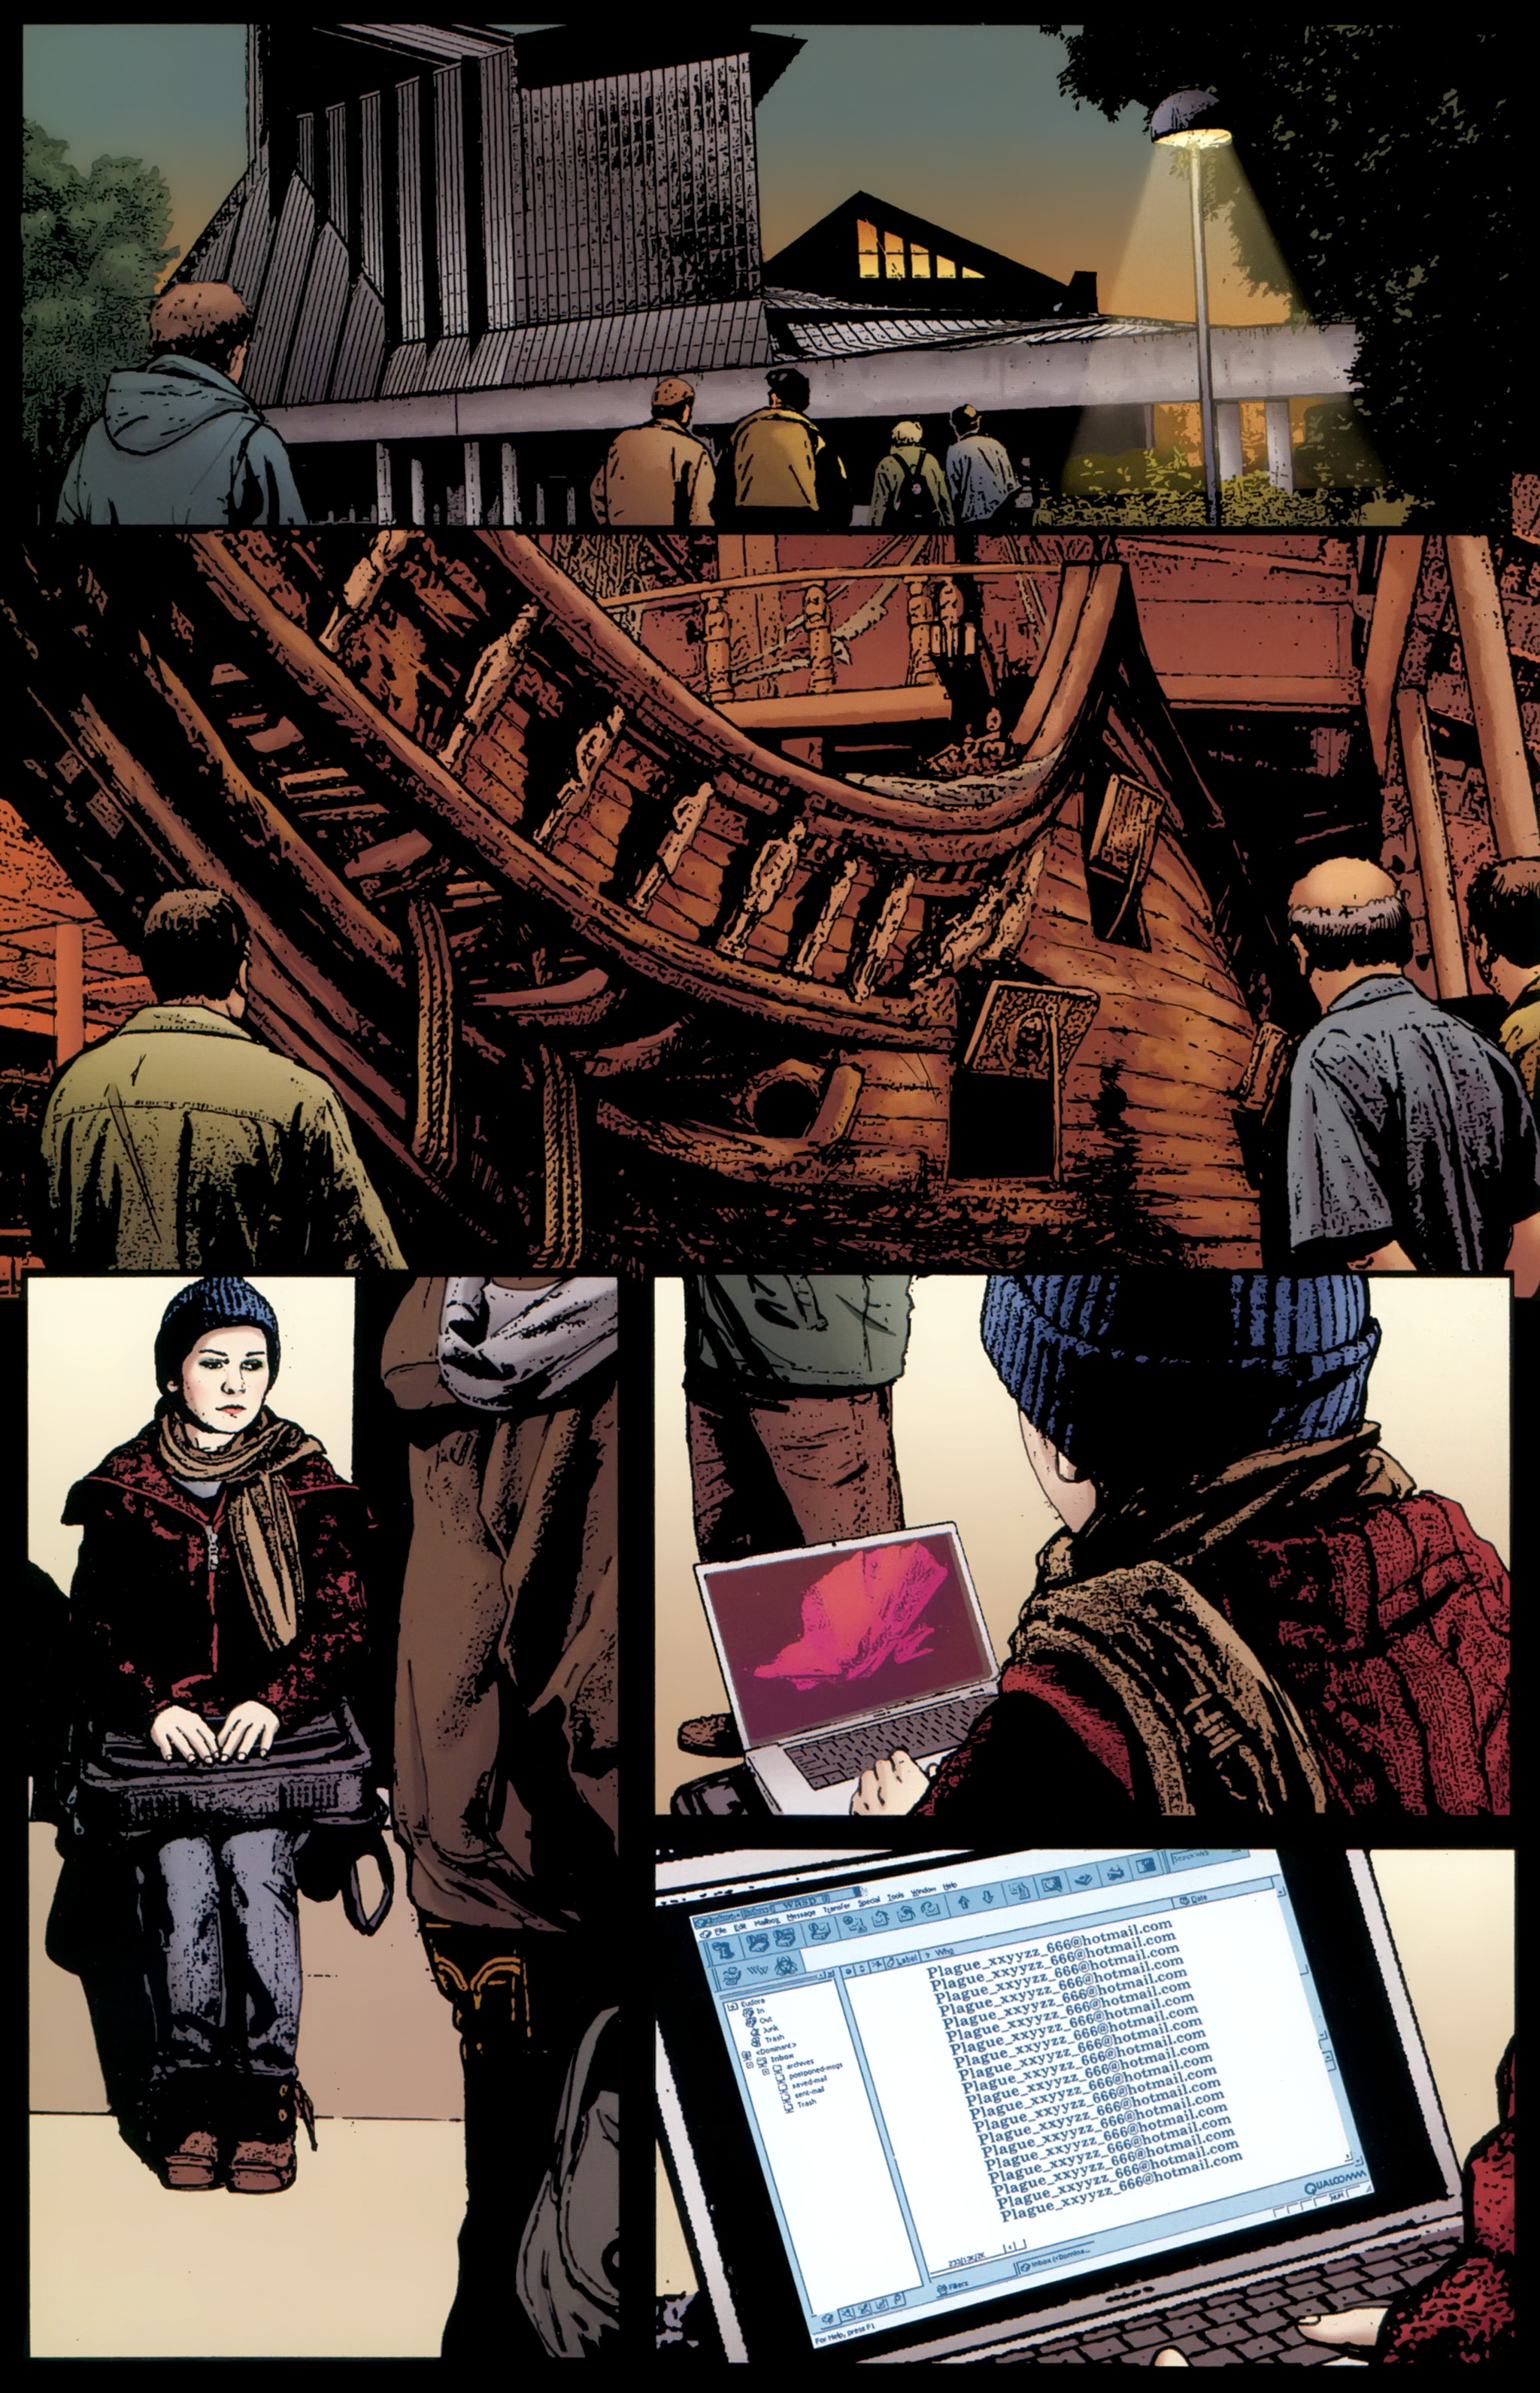 Read online The Girl With the Dragon Tattoo comic -  Issue # TPB 1 - 47